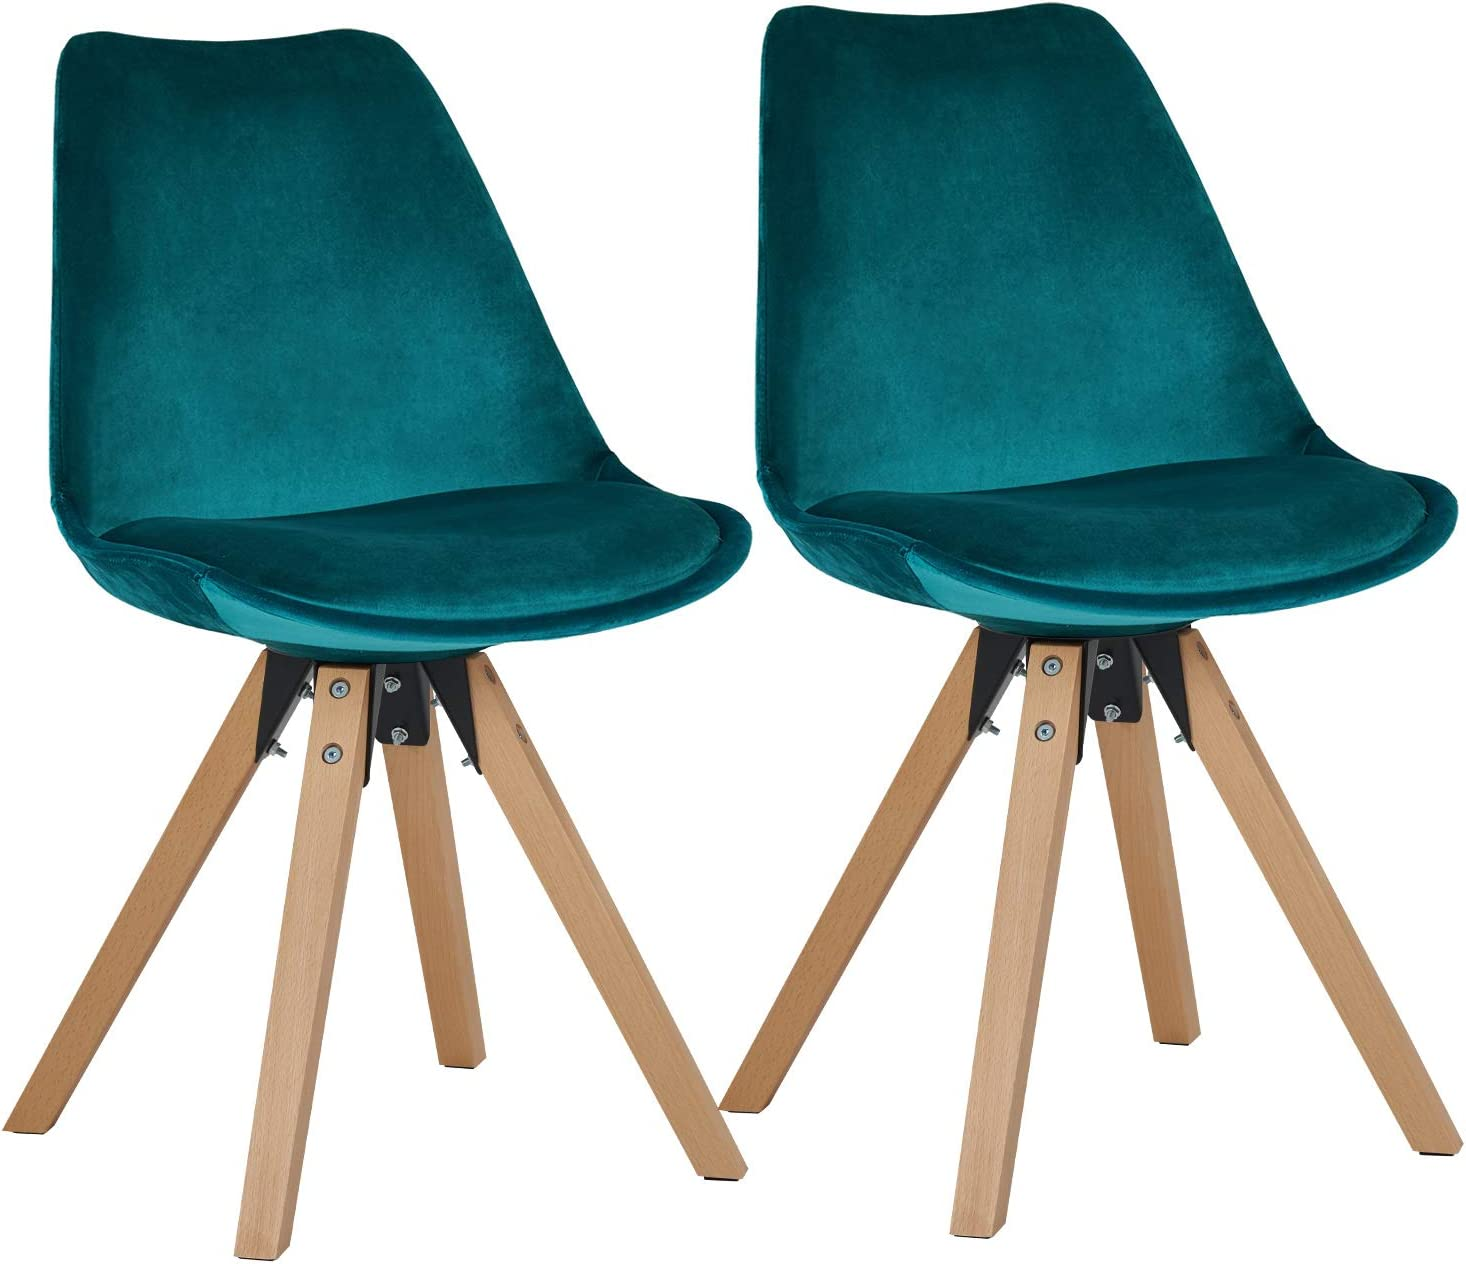 Classic Wooden Sofa Set, Dining Chairs Set Of 2 Plastic Chairs With Faux Leather Seat Cushion Retro Design With Wooden Legs Colour Selection Wy 518m Colour Teal Material Velvet Amazon Co Uk Kitchen Home